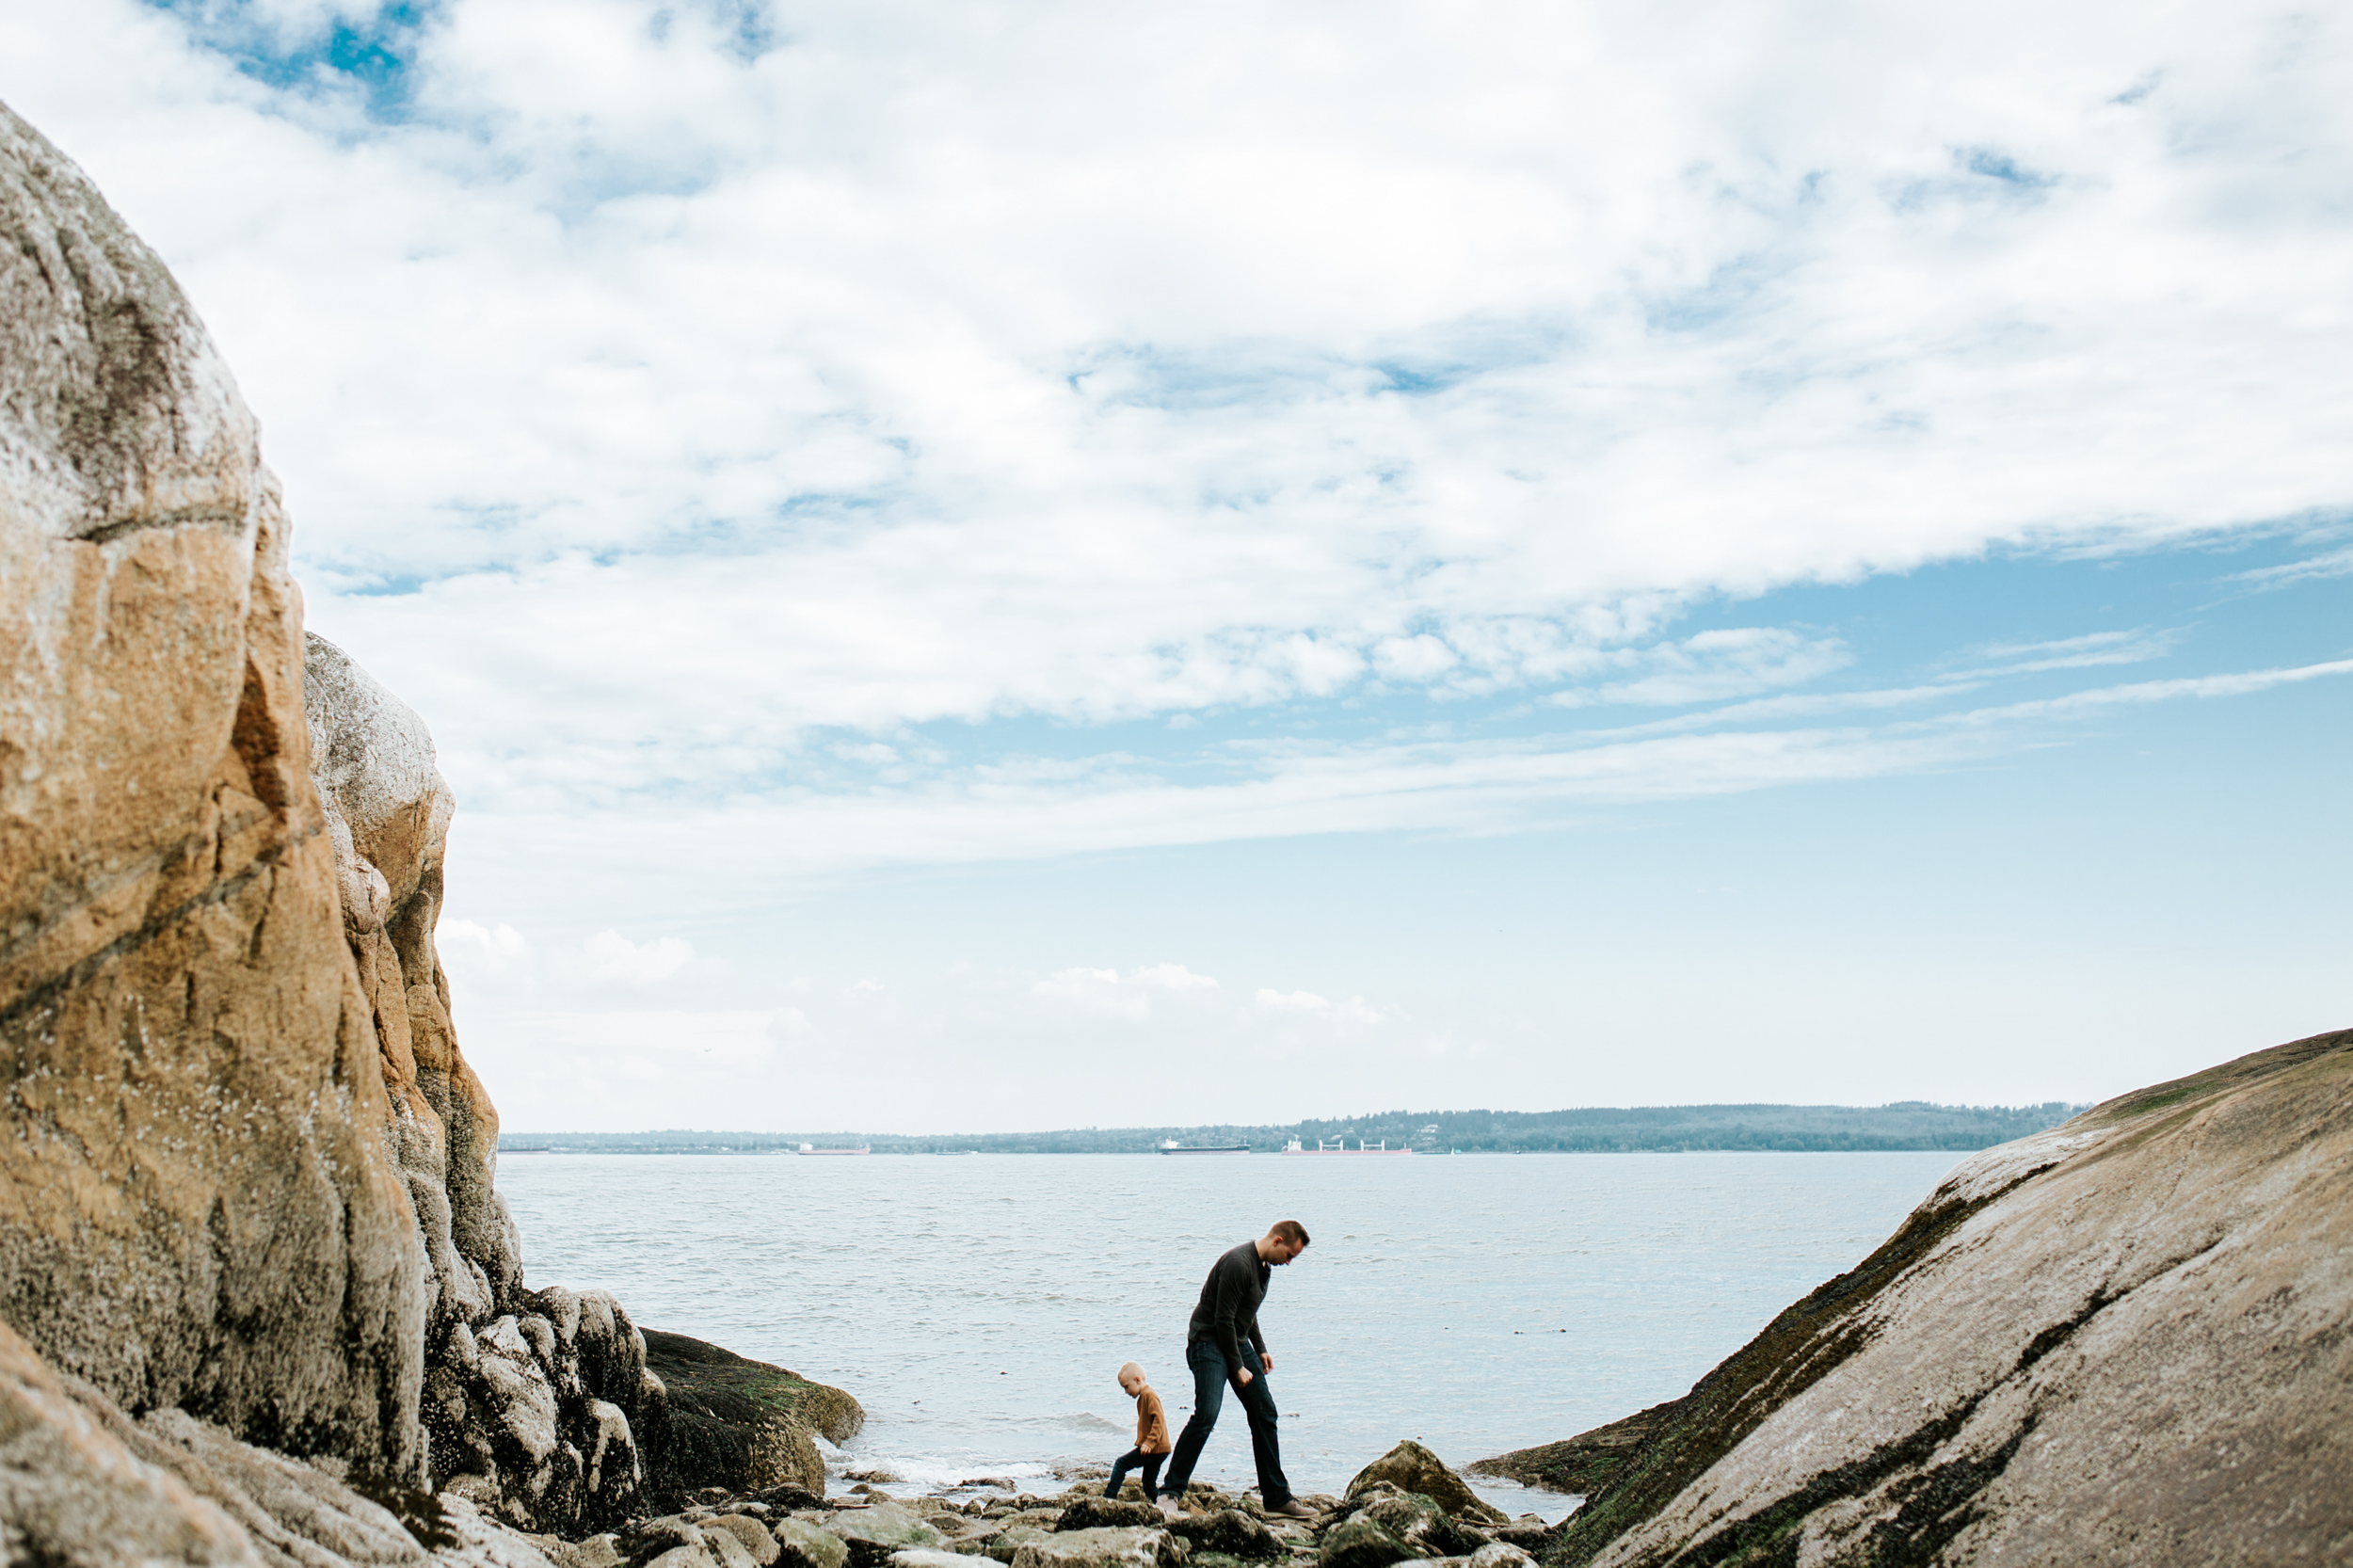 father and son walking near the ocean between rocks at lighthouse park with blue skies